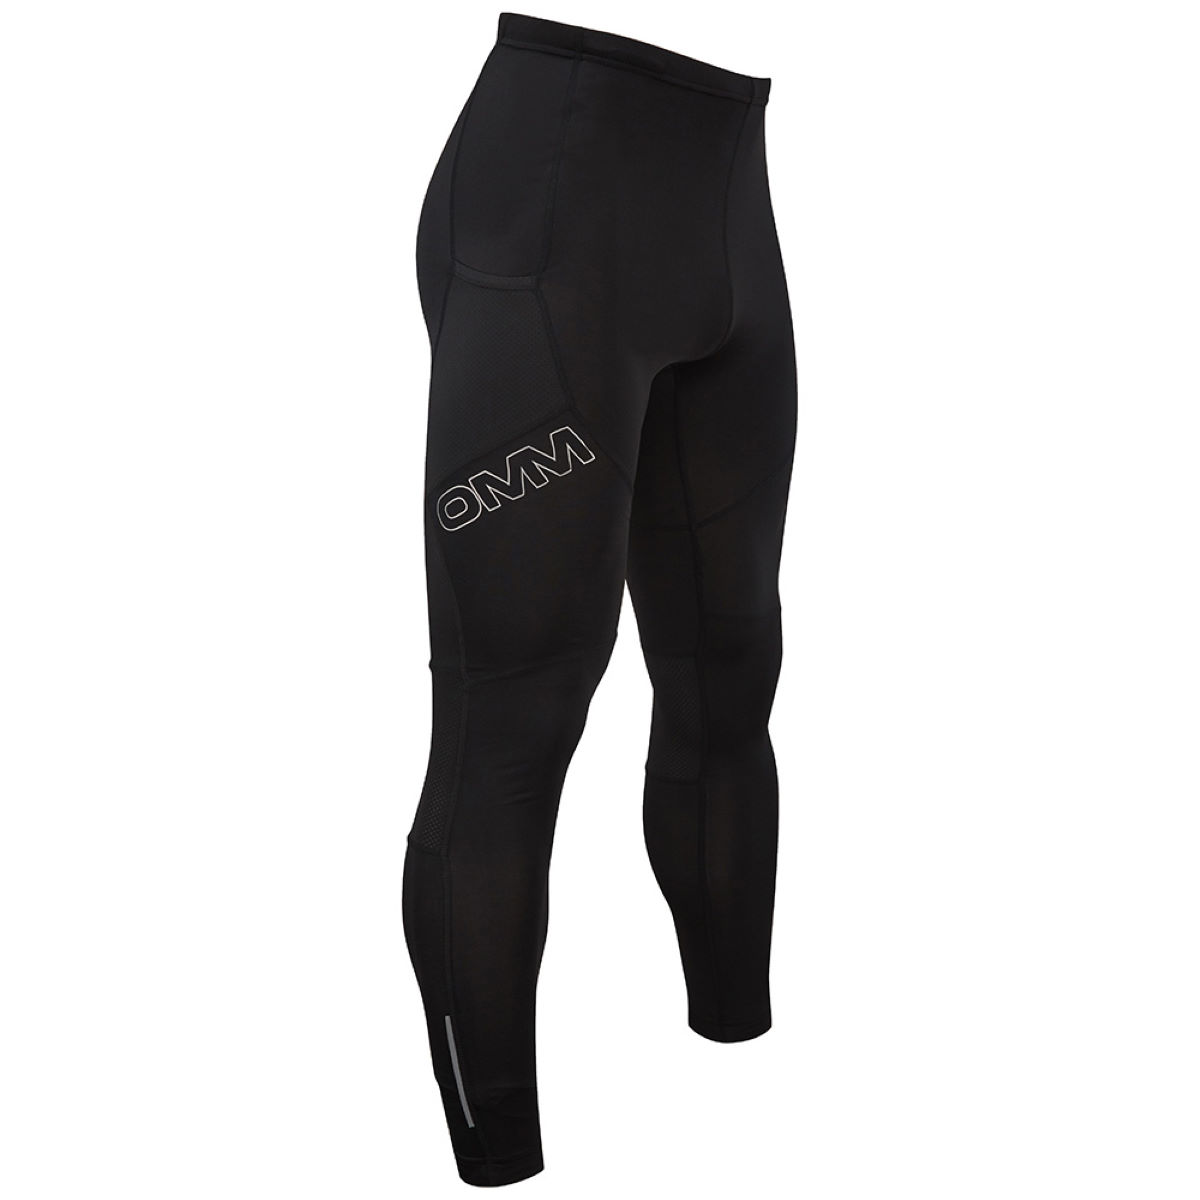 Collant OMM Flash 1,0 - XL Noir Shorts de running